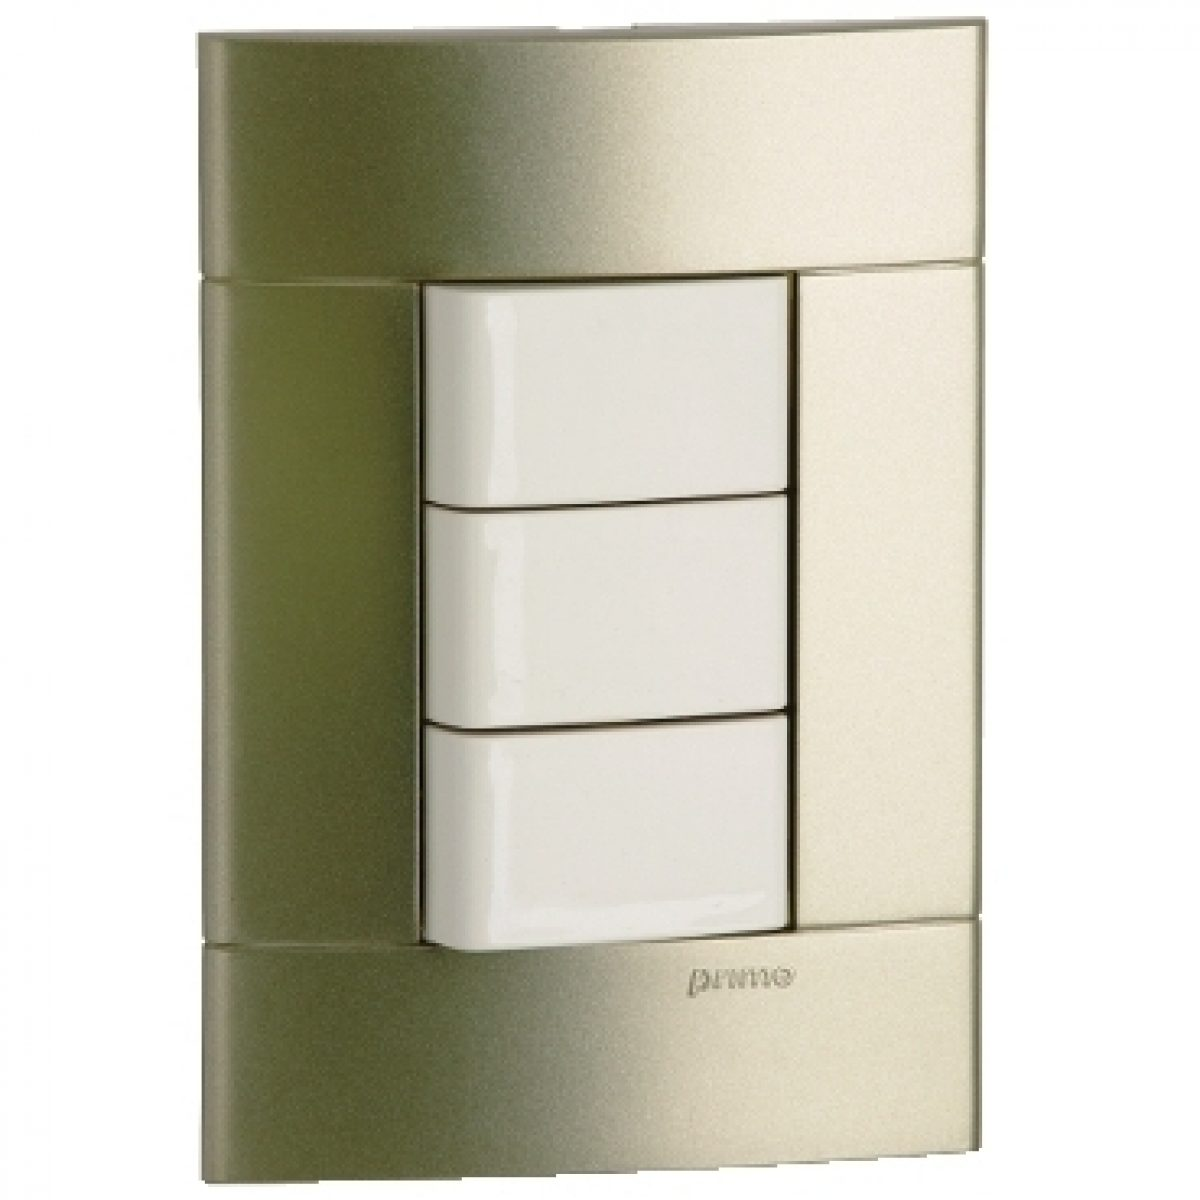 Schneider Electric Antimicrobial Switches